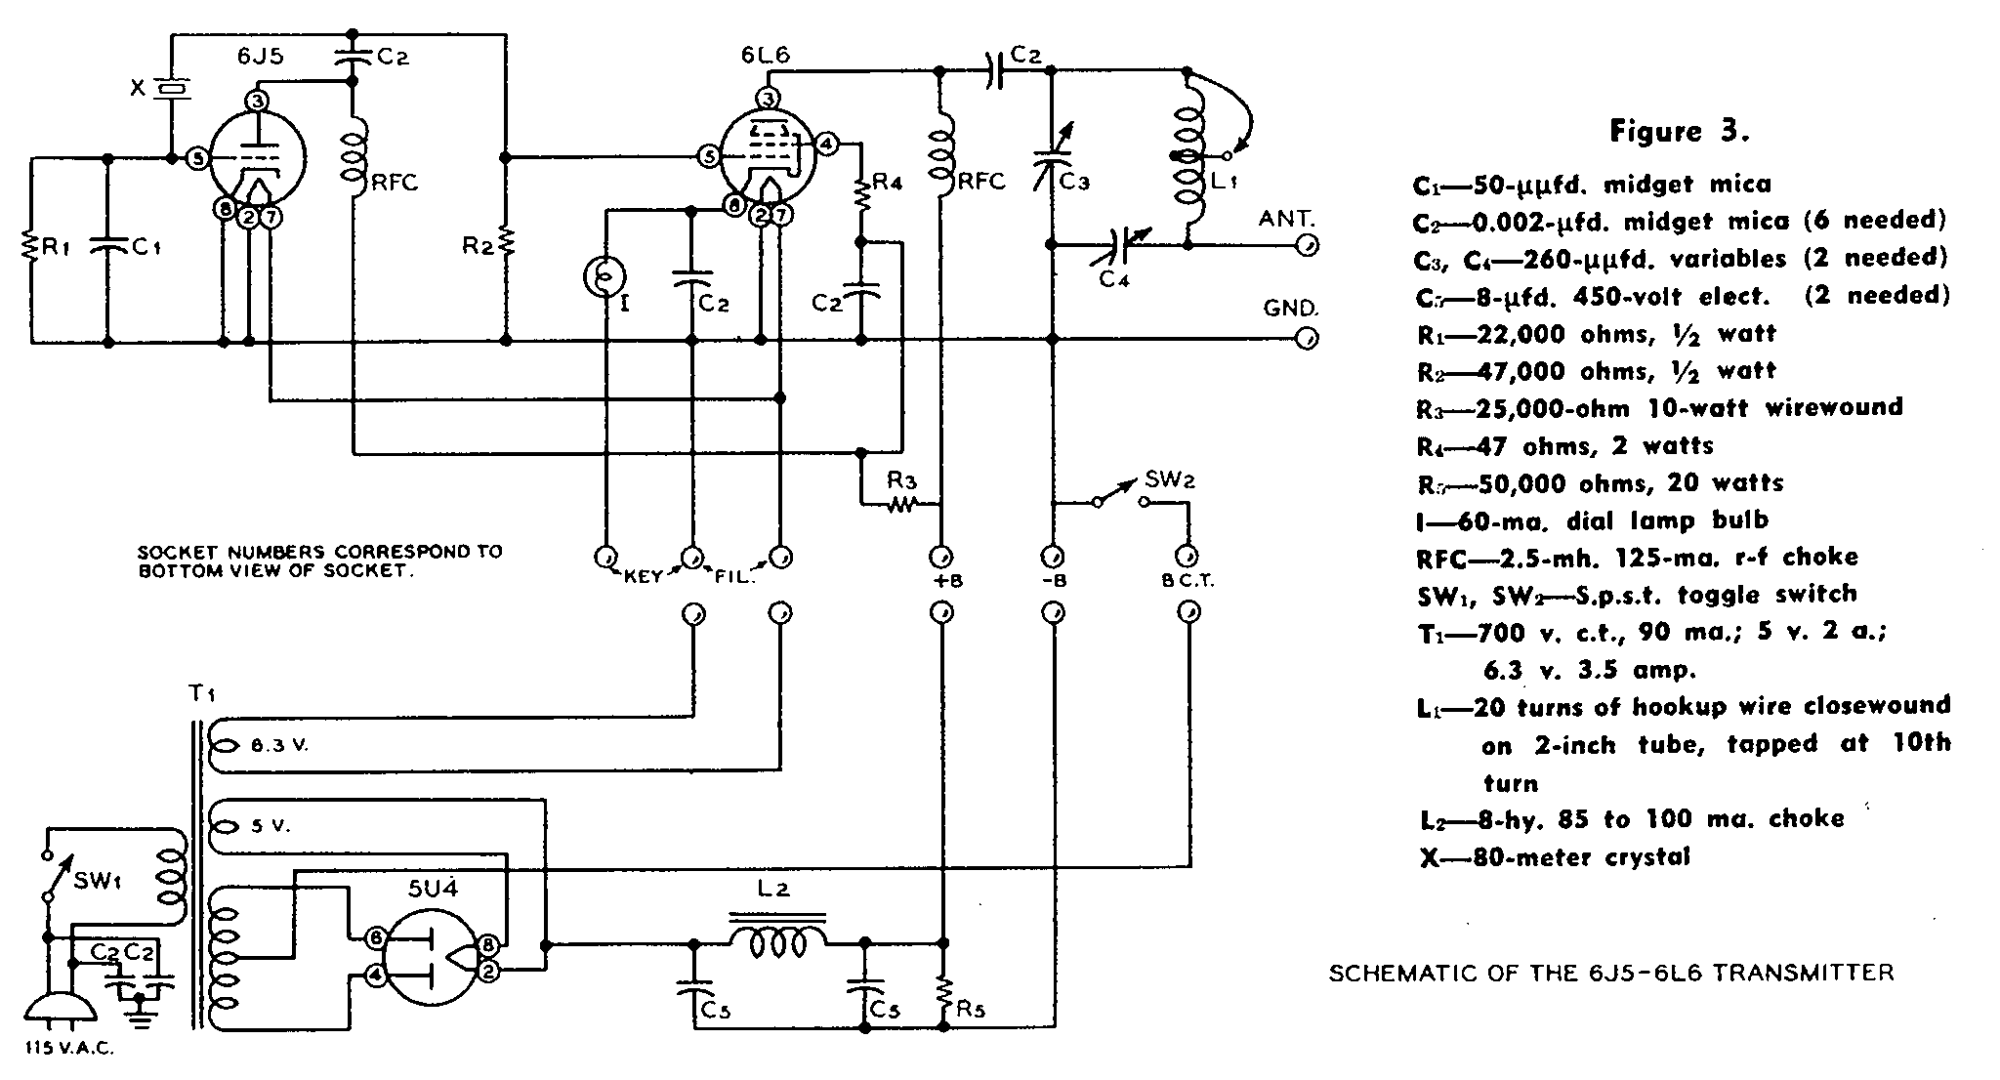 hight resolution of boosted pierce transmitter schematic diagram from page 288 of the 1947 radio handbook